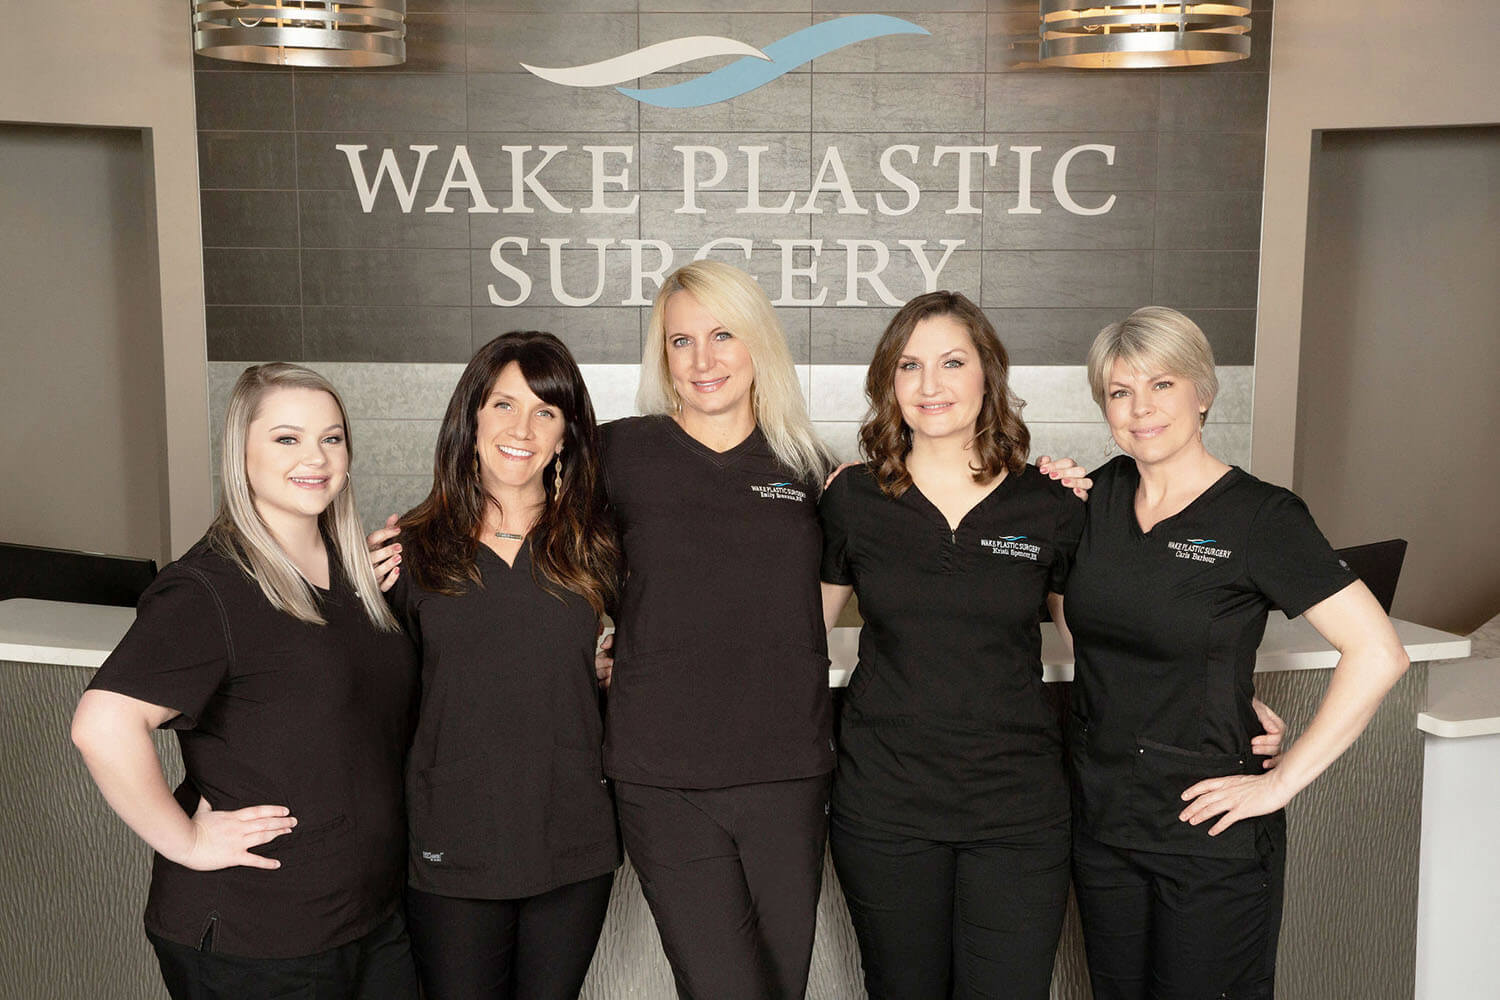 Medspa Staff Group